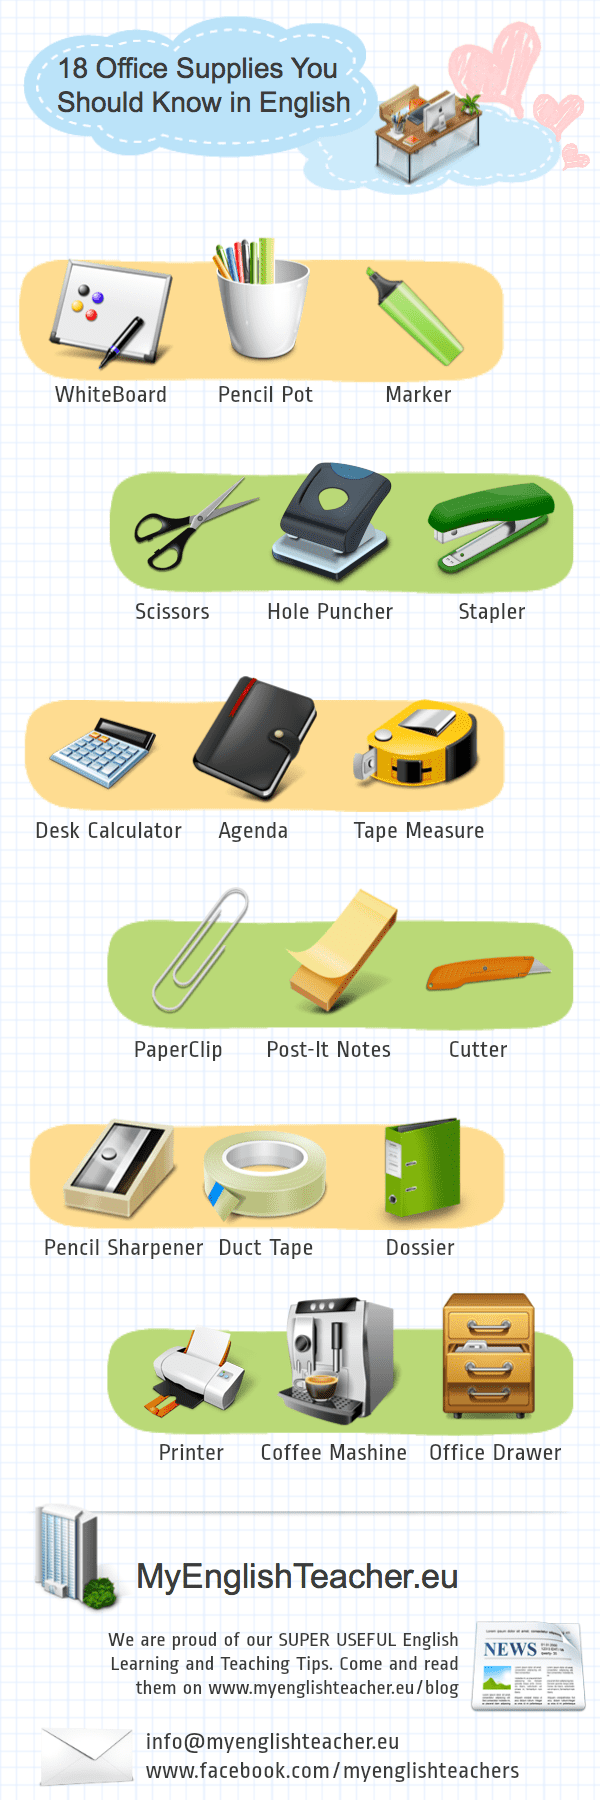 18 Office Supplies You Should Know in English